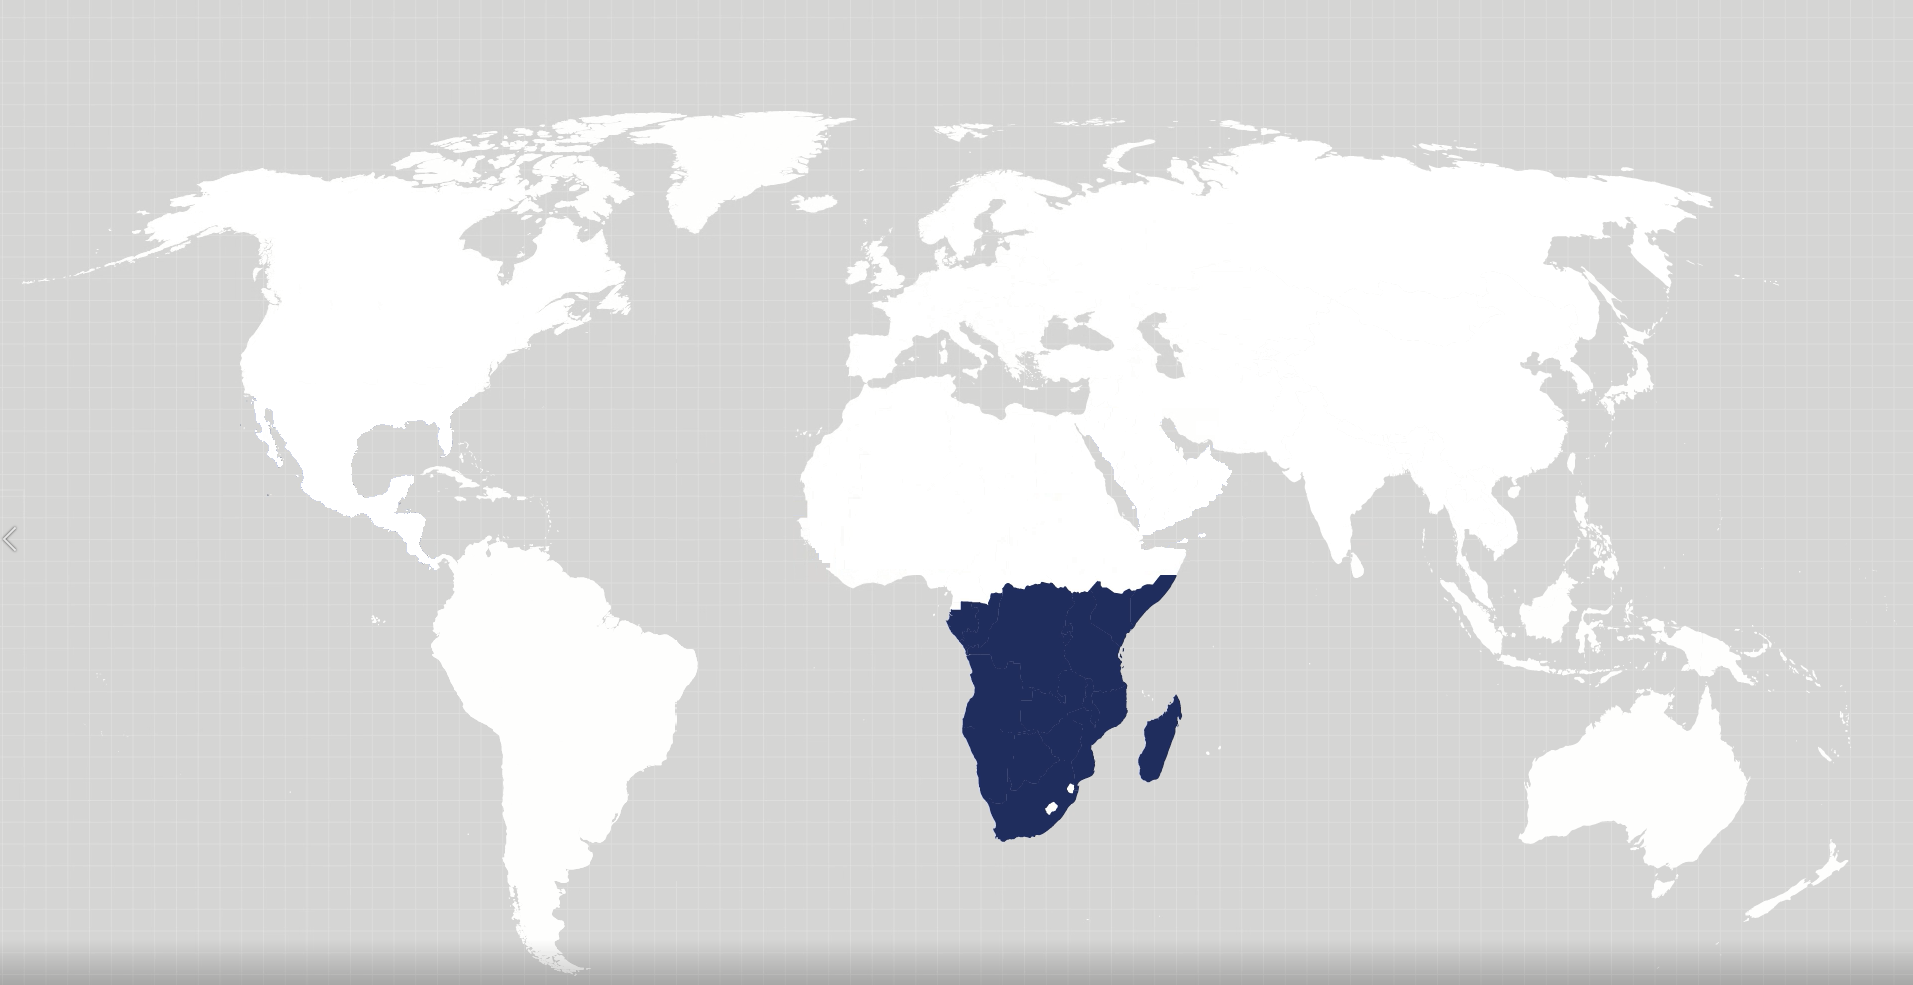 Africa operations map